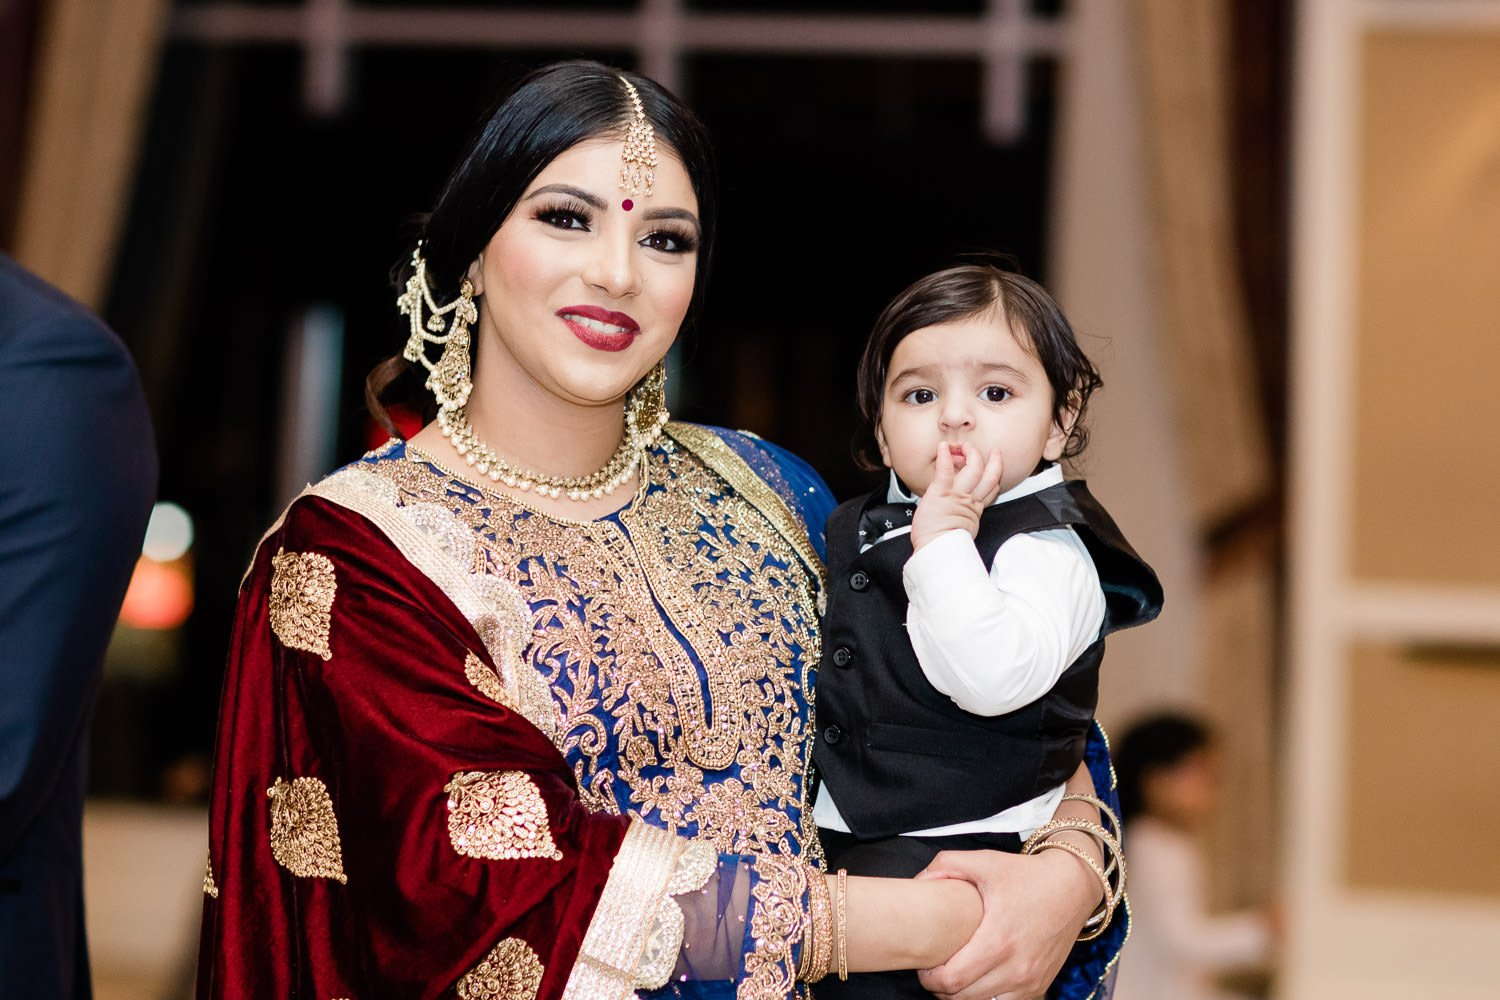 Indian bride holding a baby at the first Lohri